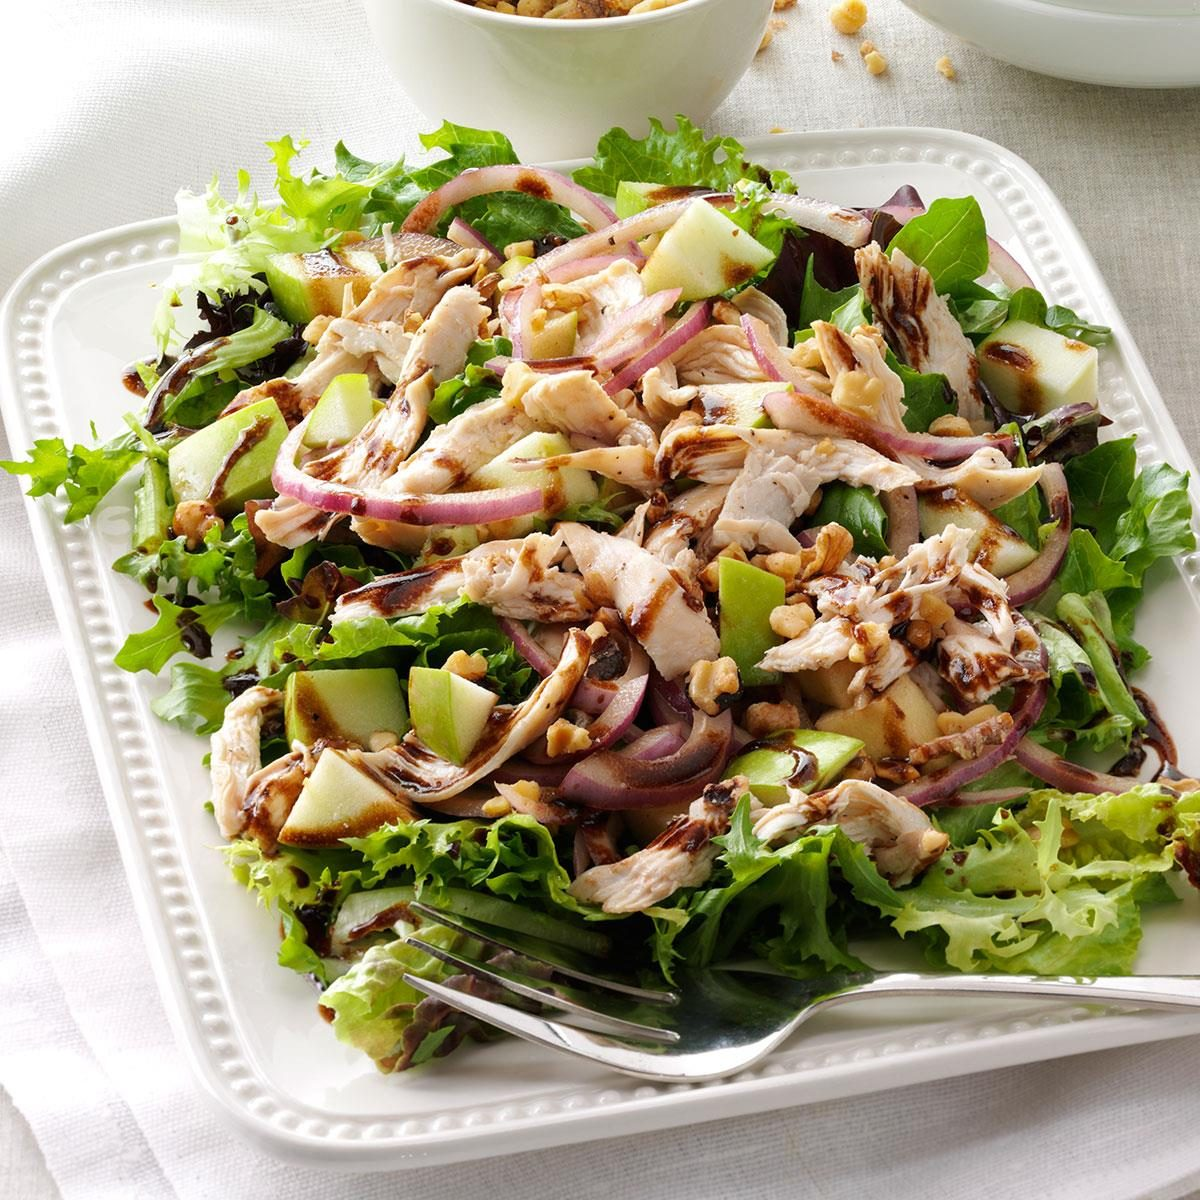 Inspired by: Panera Bread's Fuji Apple Salad with Chicken